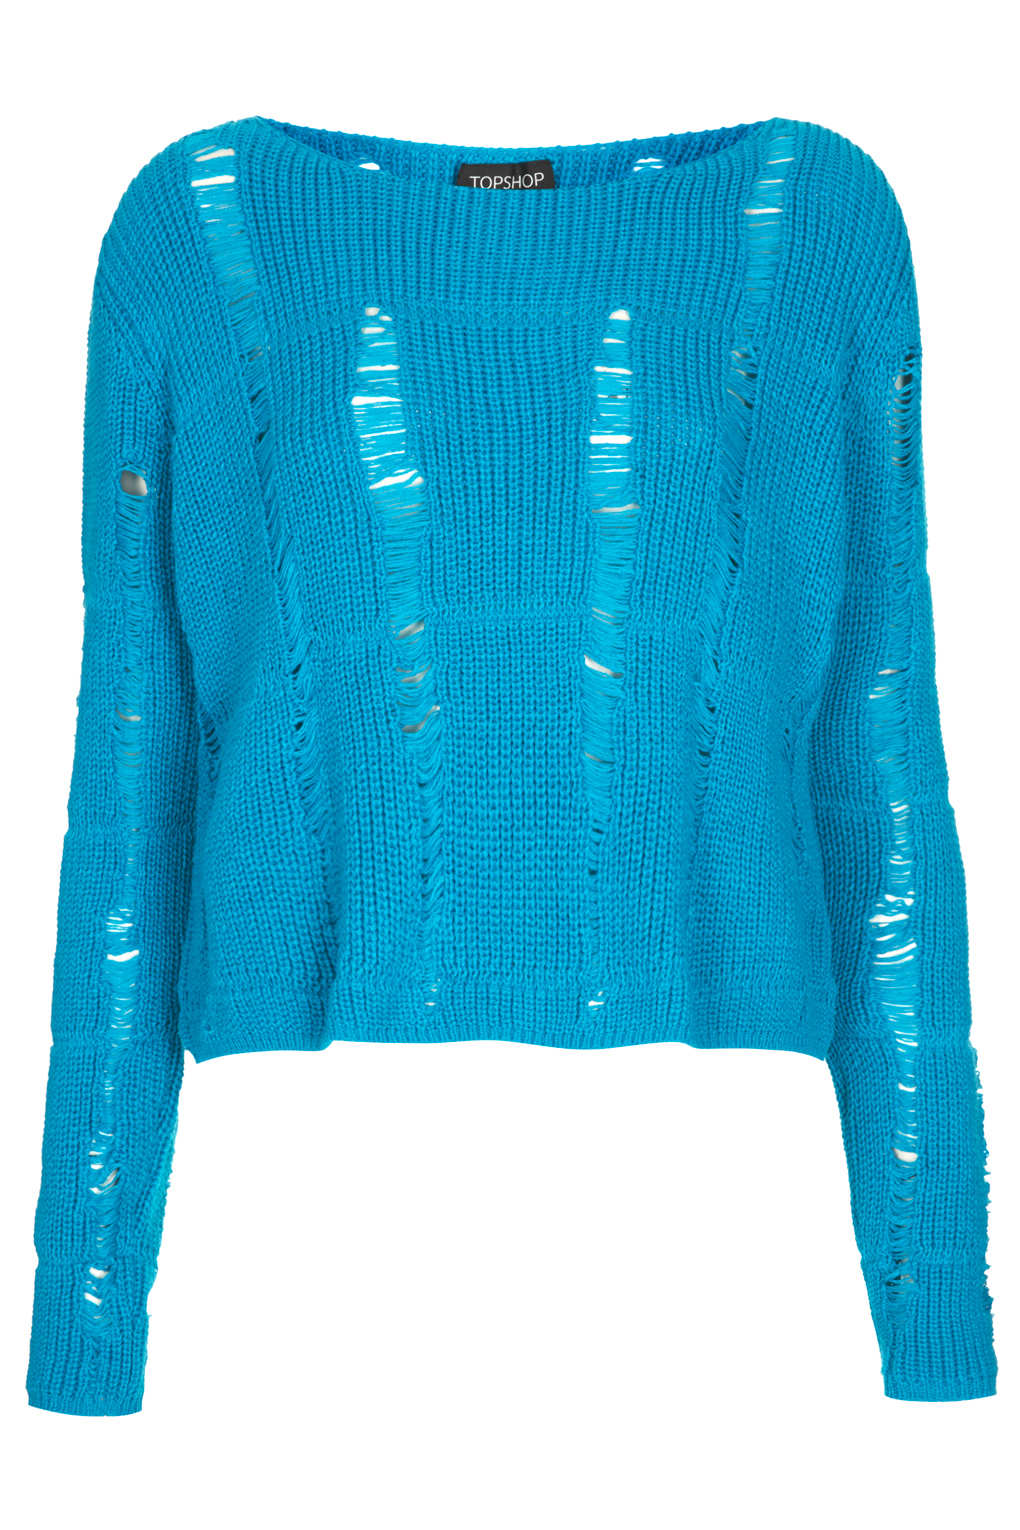 Topshop Knitted Ladder Stitch Jumper In Blue Lyst